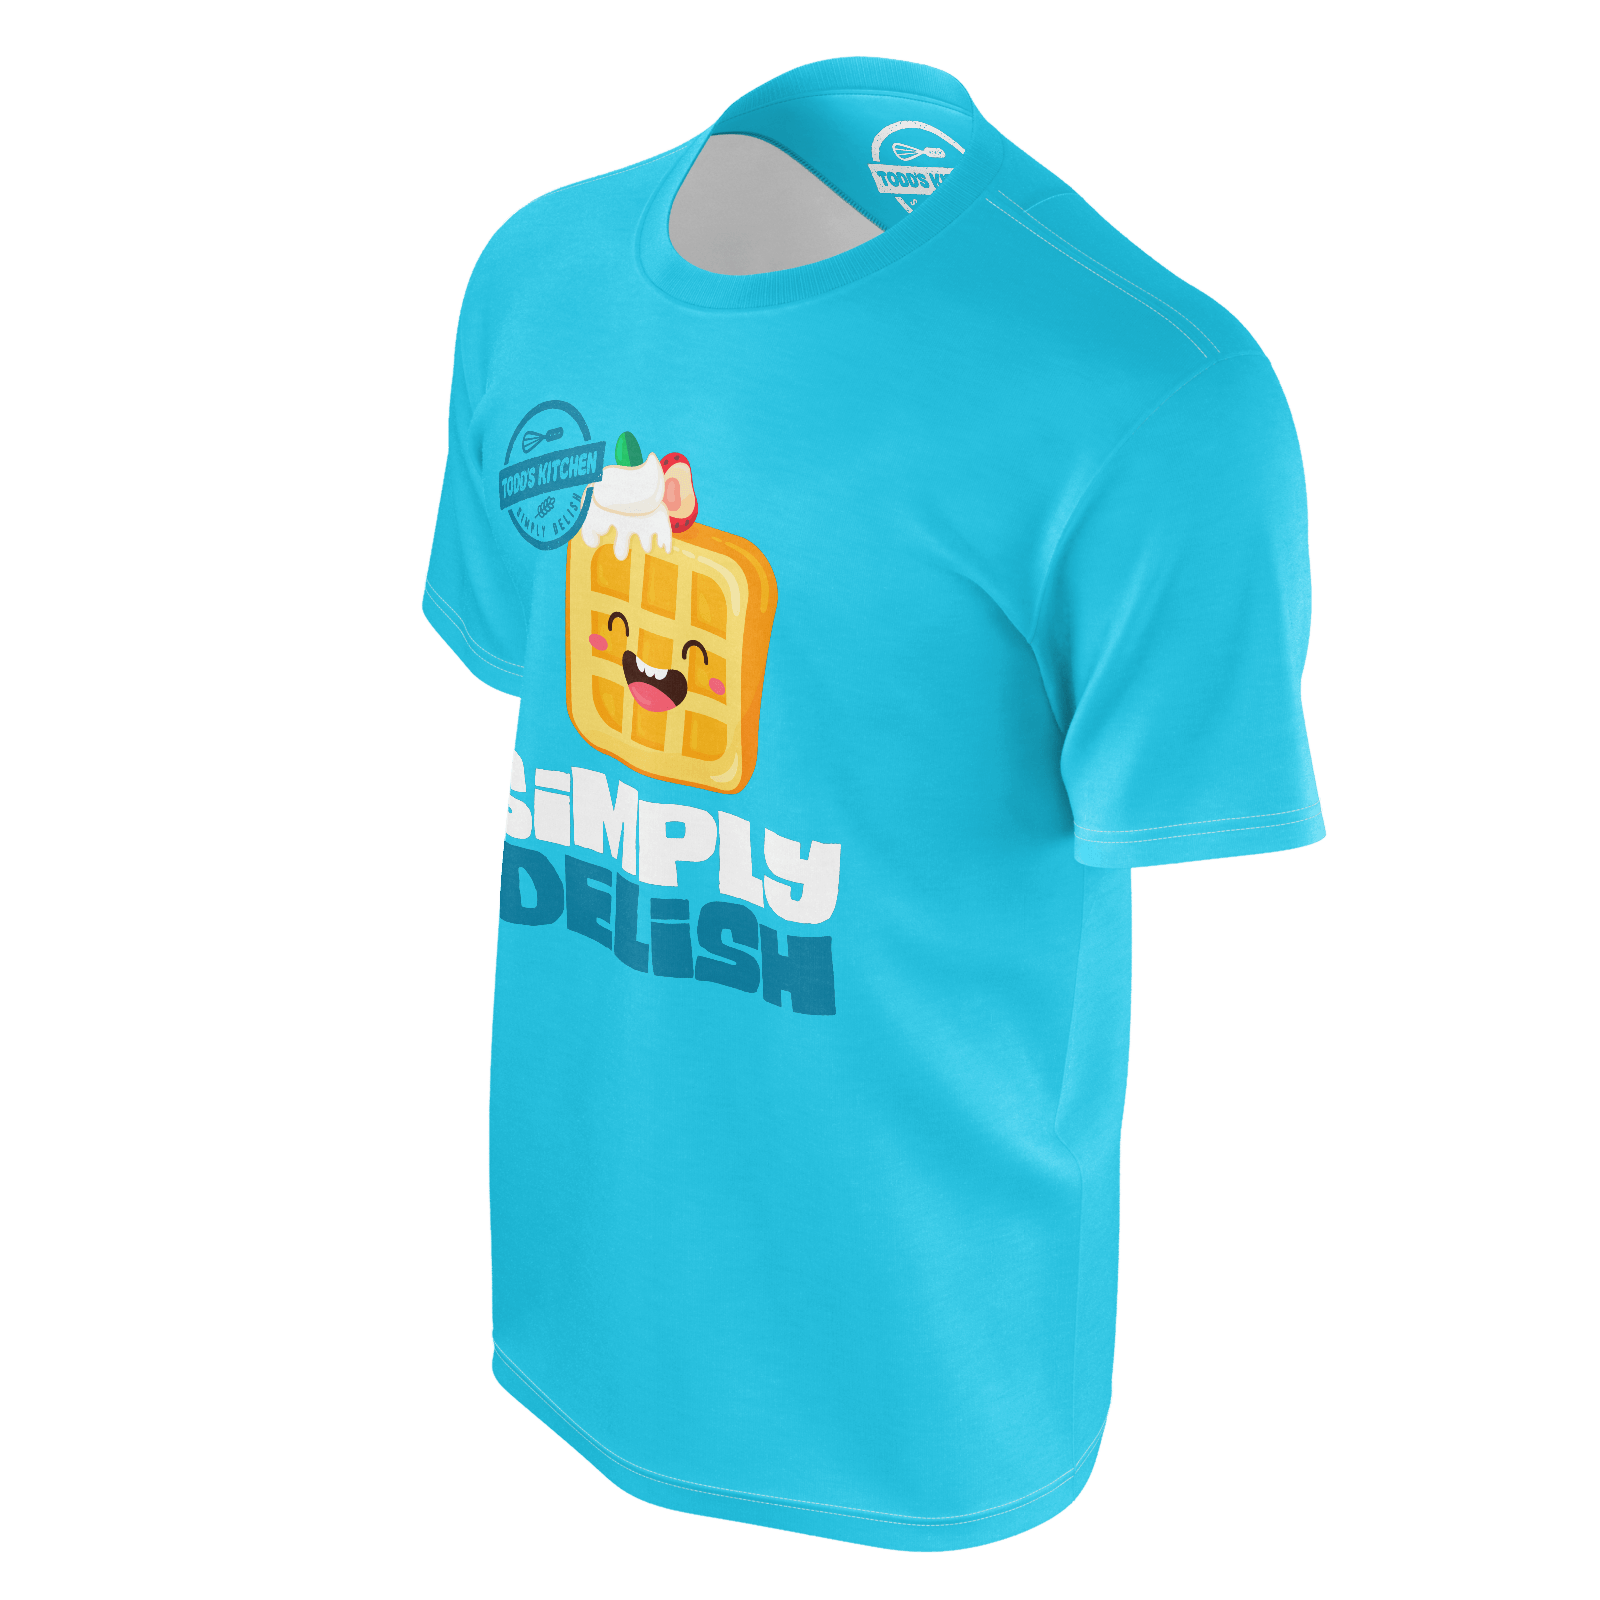 todd s kitchen simply delish t shirt bbtv shop